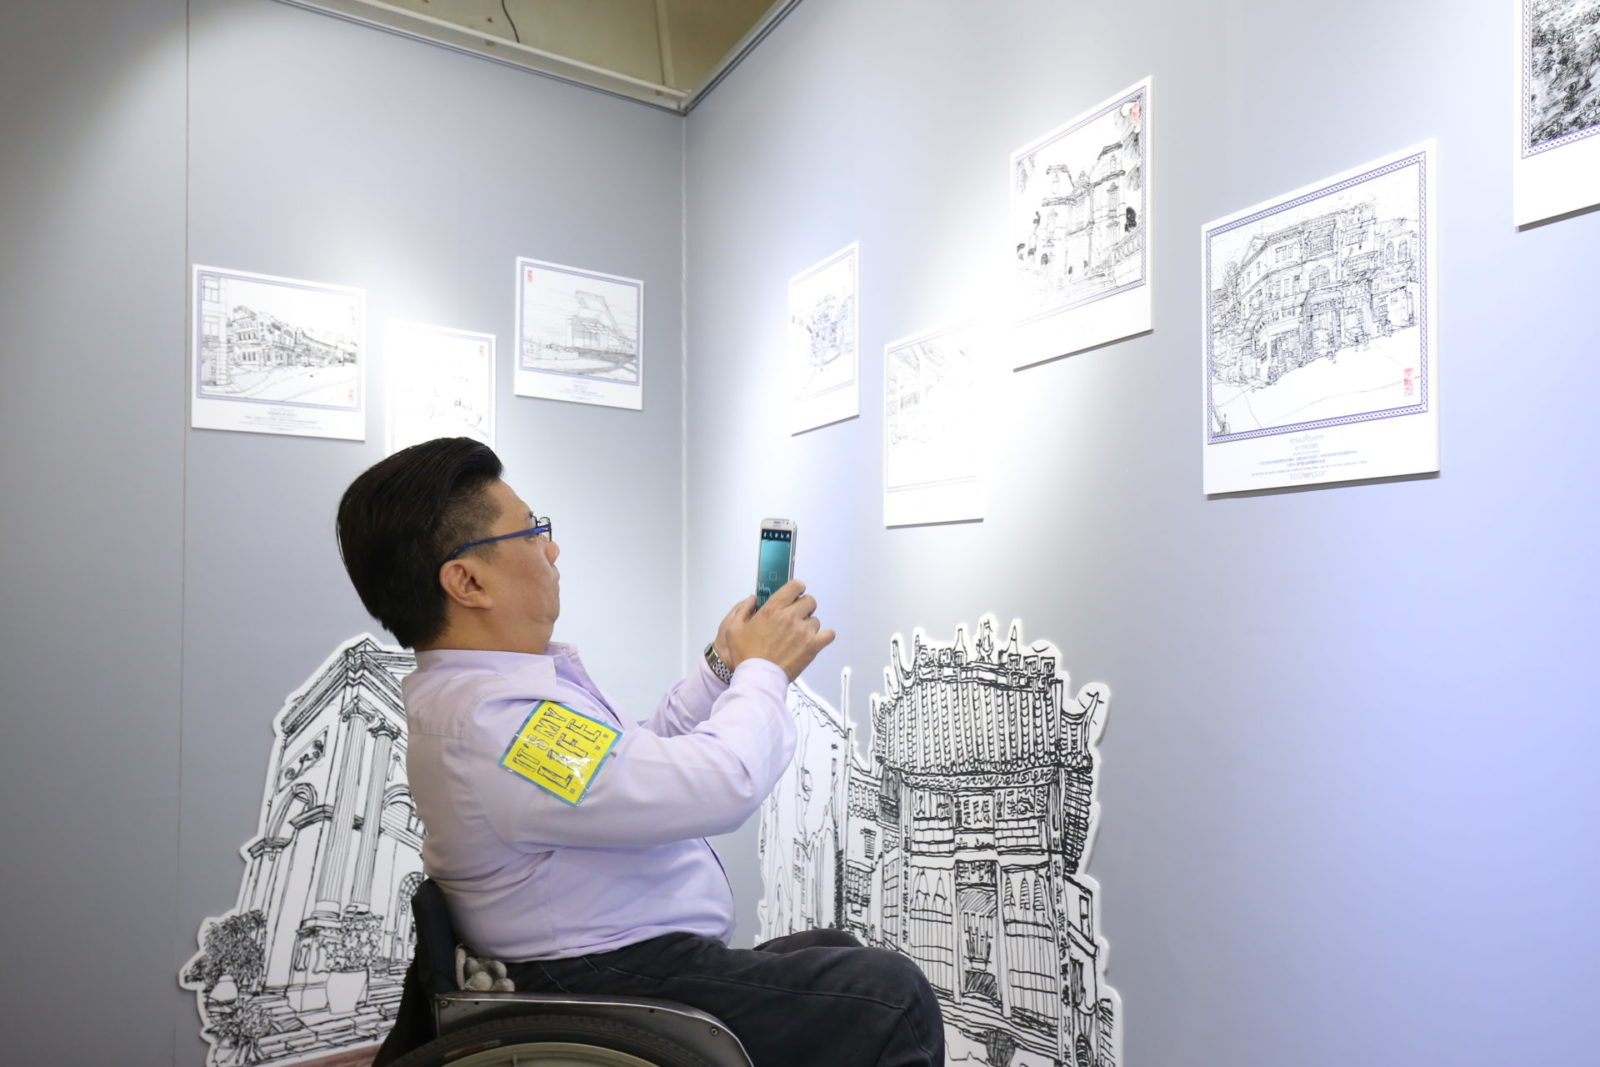 Arts and Handicrafts of People with Disabilities